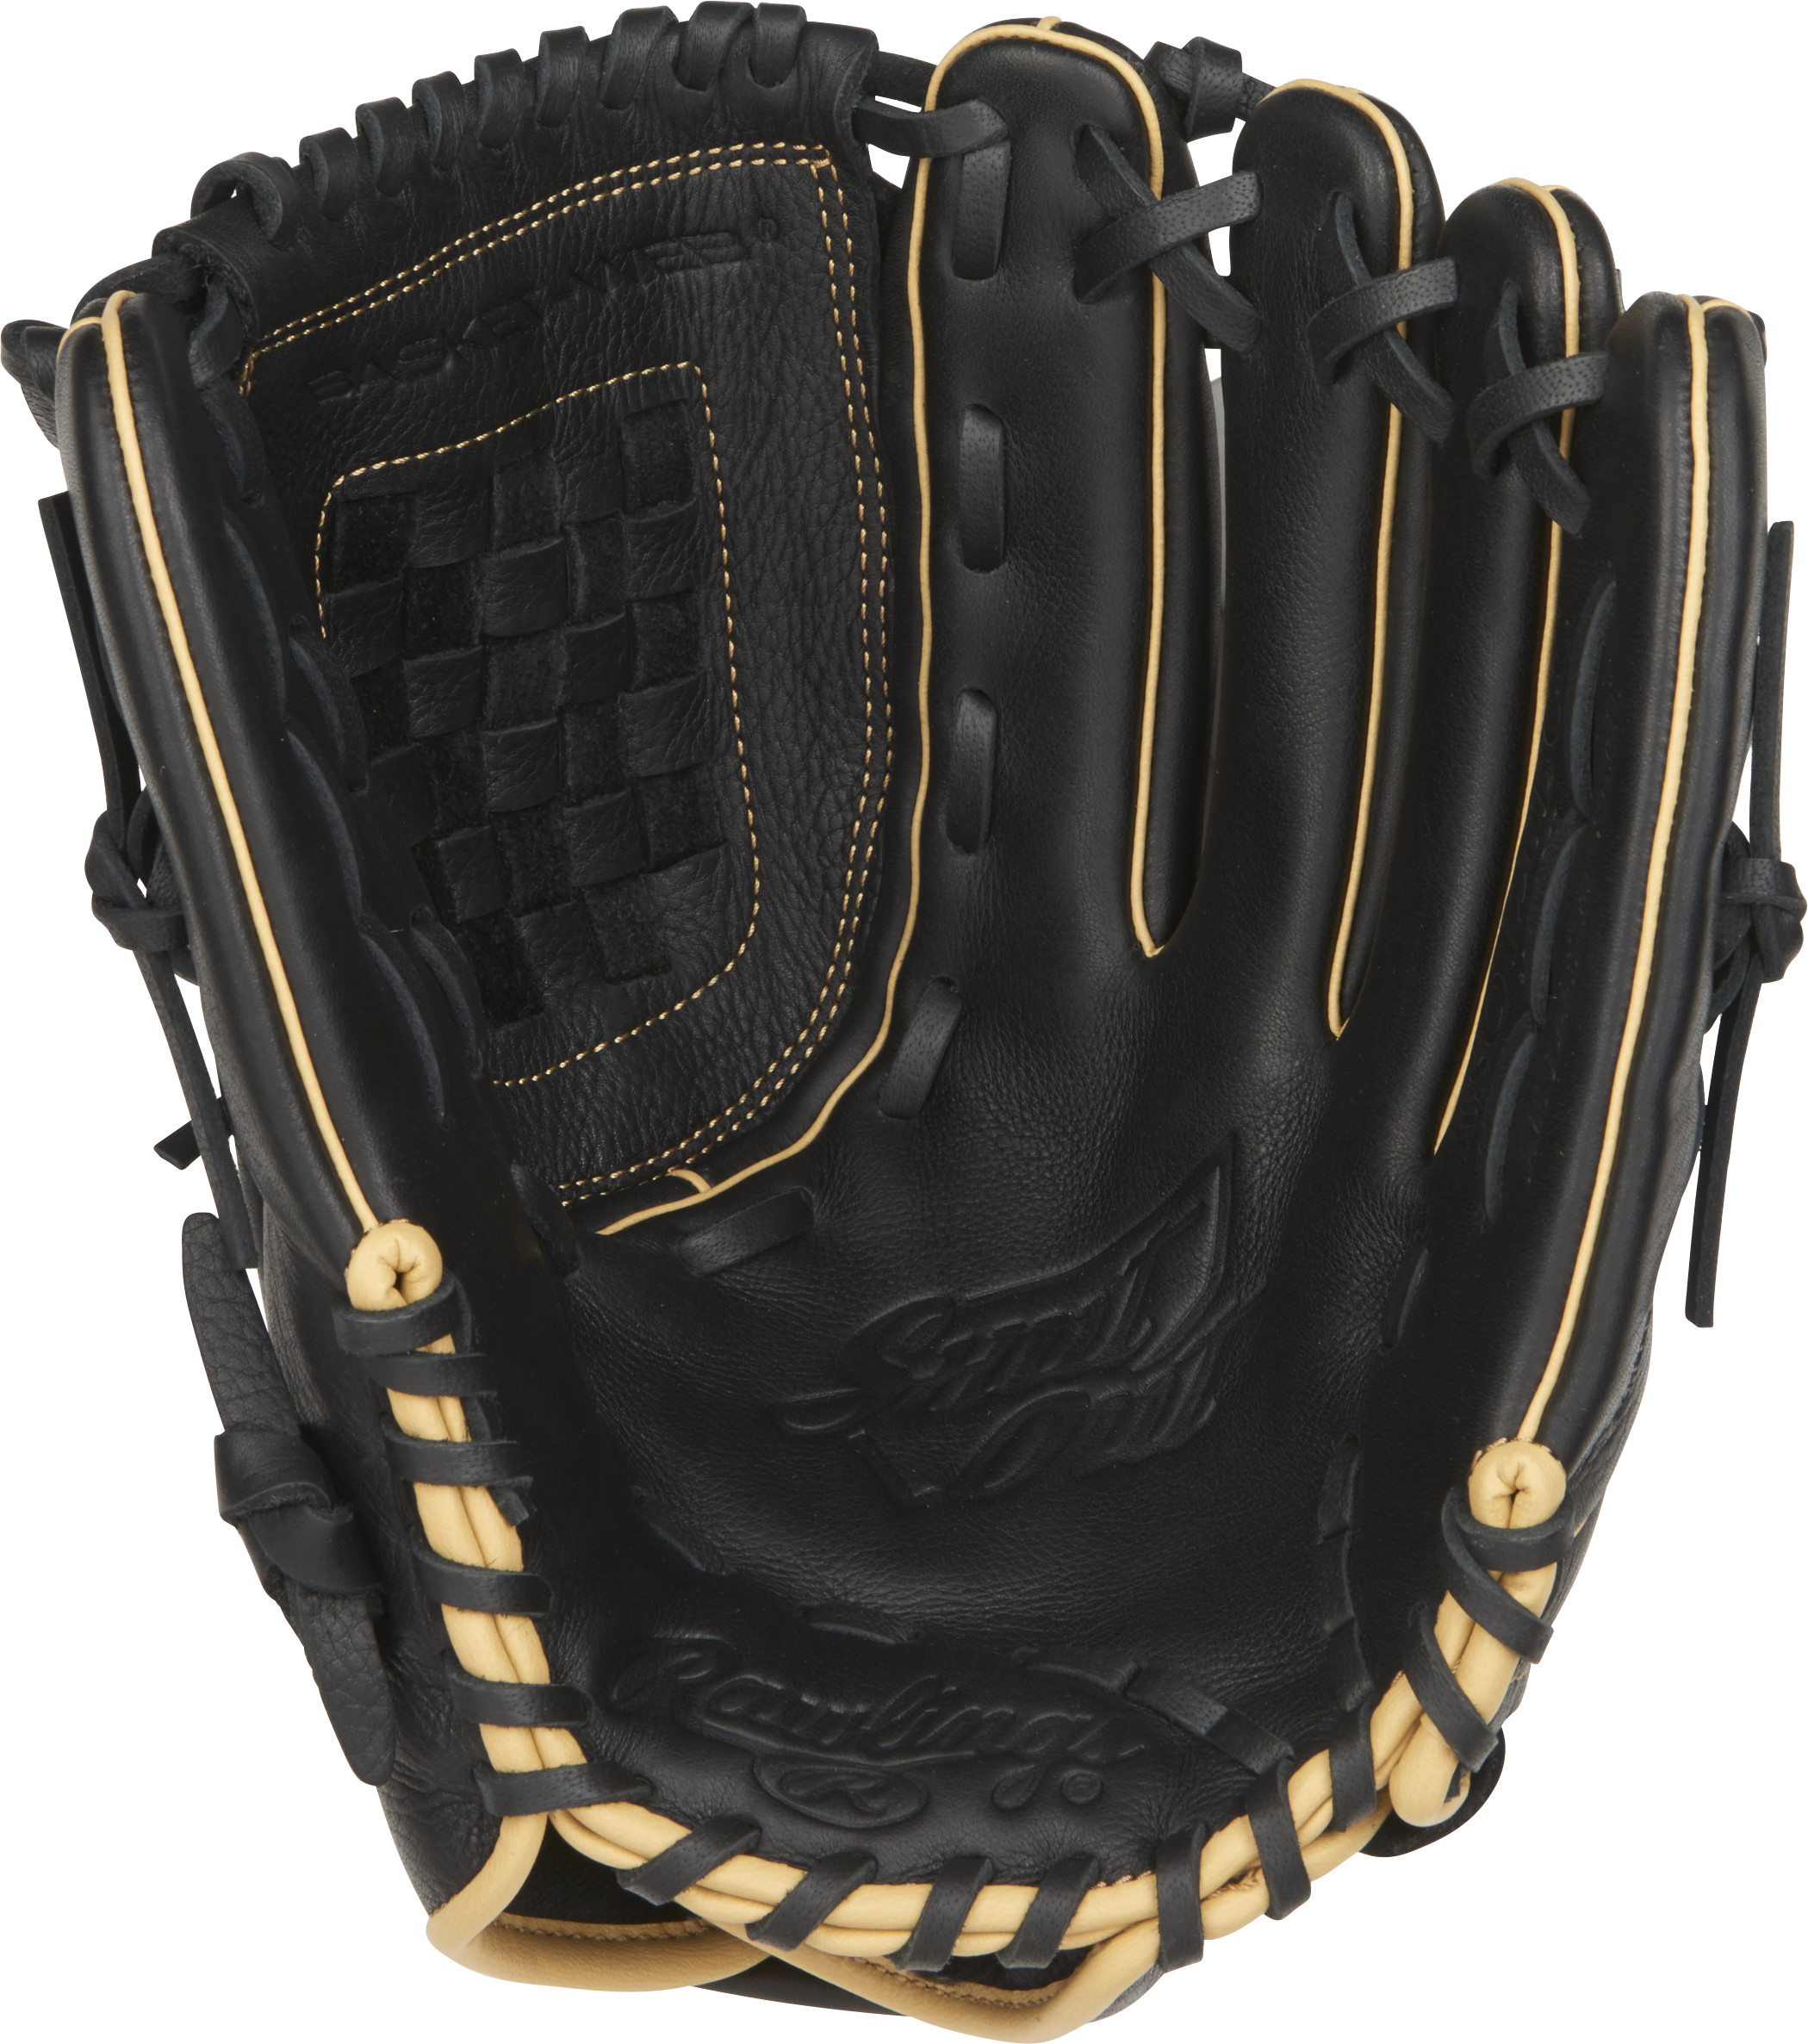 http://www.bestbatdeals.com/images/gloves/rawlings/RSO120BCC-1.jpg